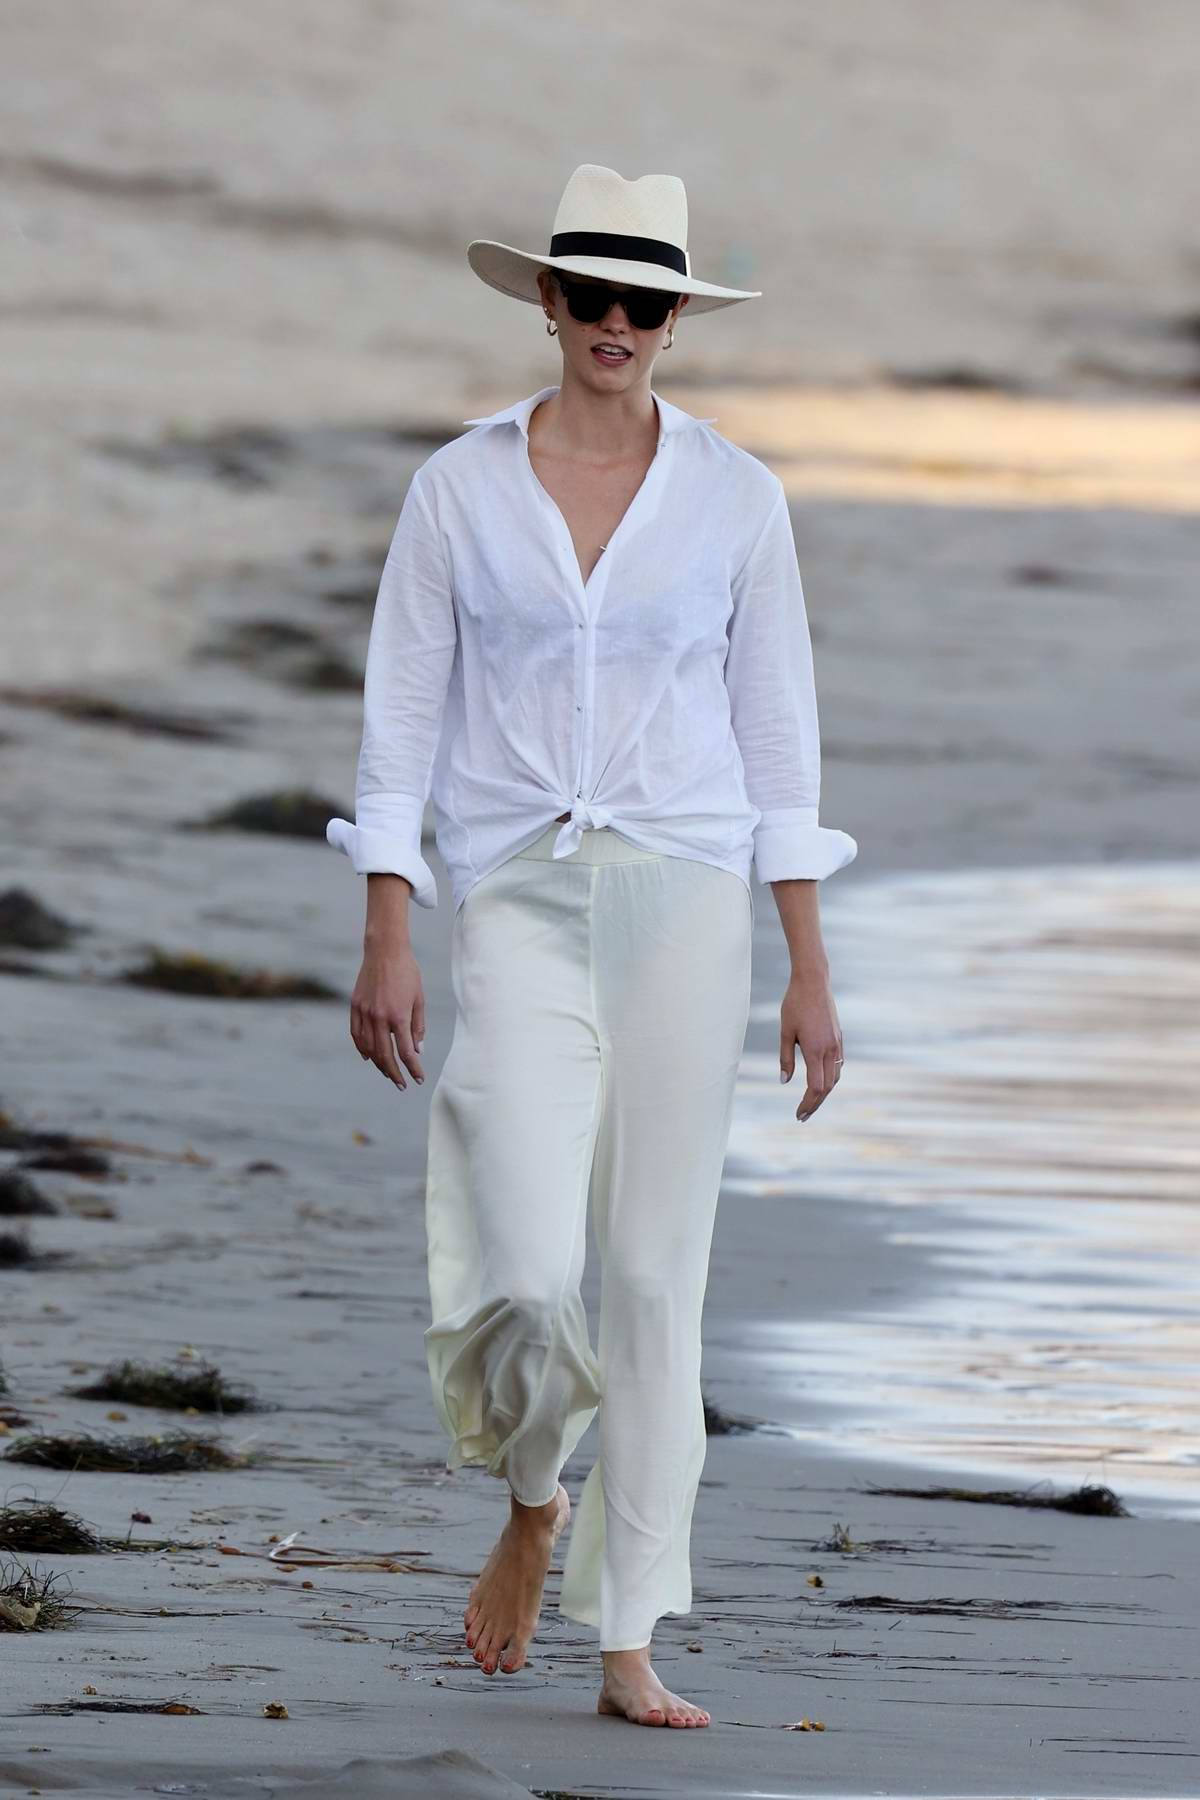 Karlie Kloss wears a stylish white ensemble as she walks the beach with her friends in Santa Monica, California